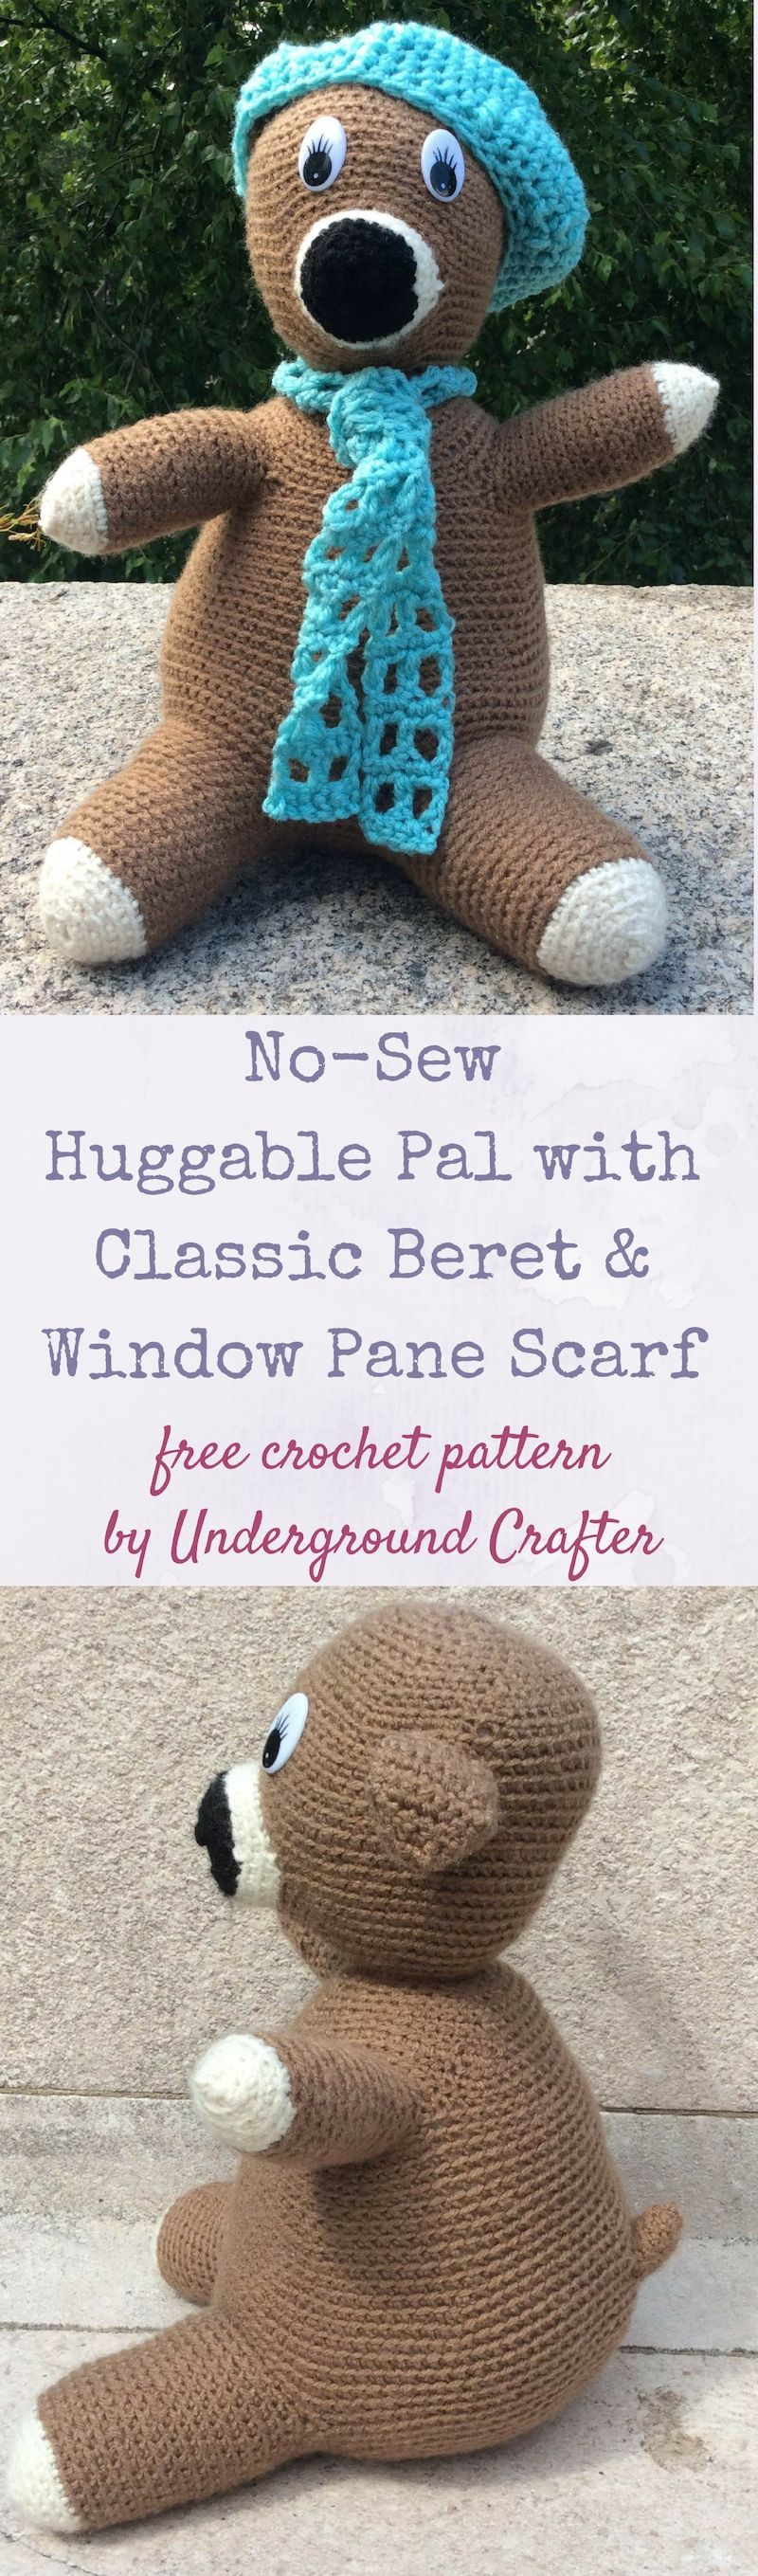 No-Sew Huggable Pal with Classic Beret and Window Pane Scarf, free ...